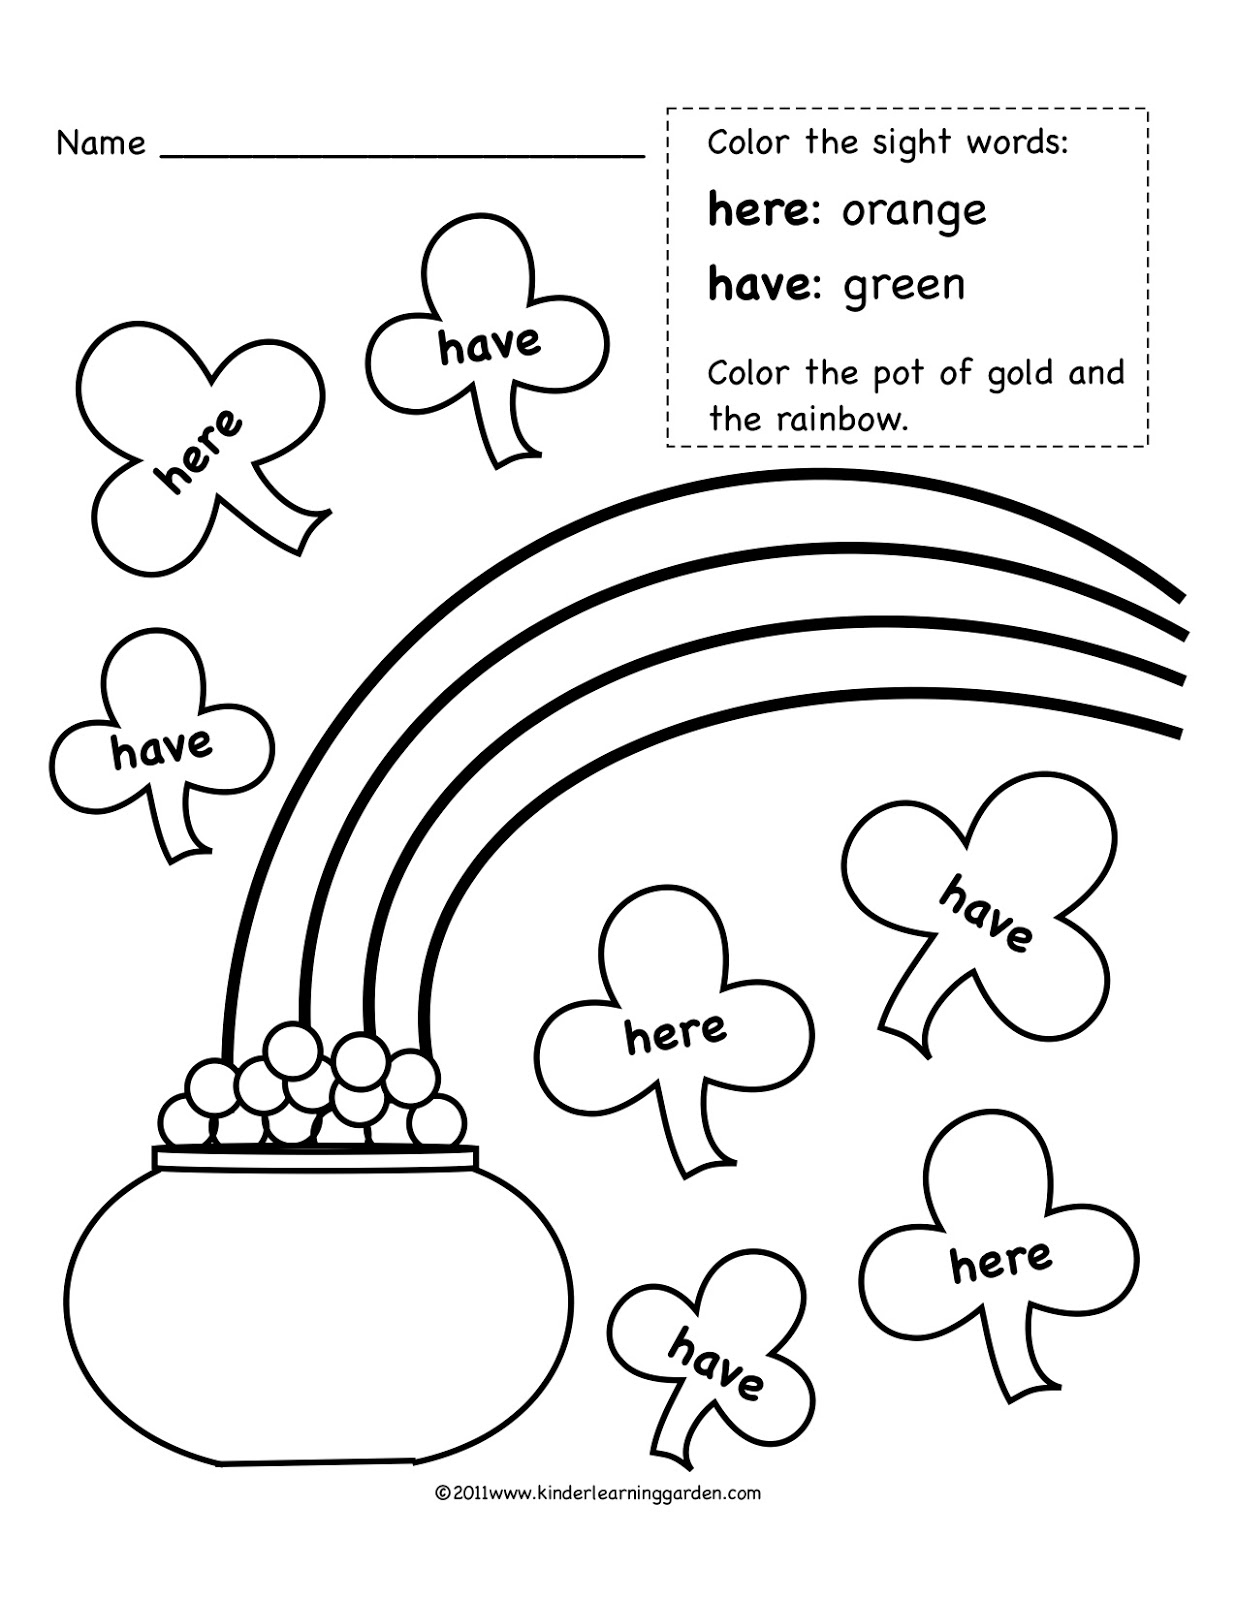 Free Coloring Pages Of Sight Words Coloring Pages With Words